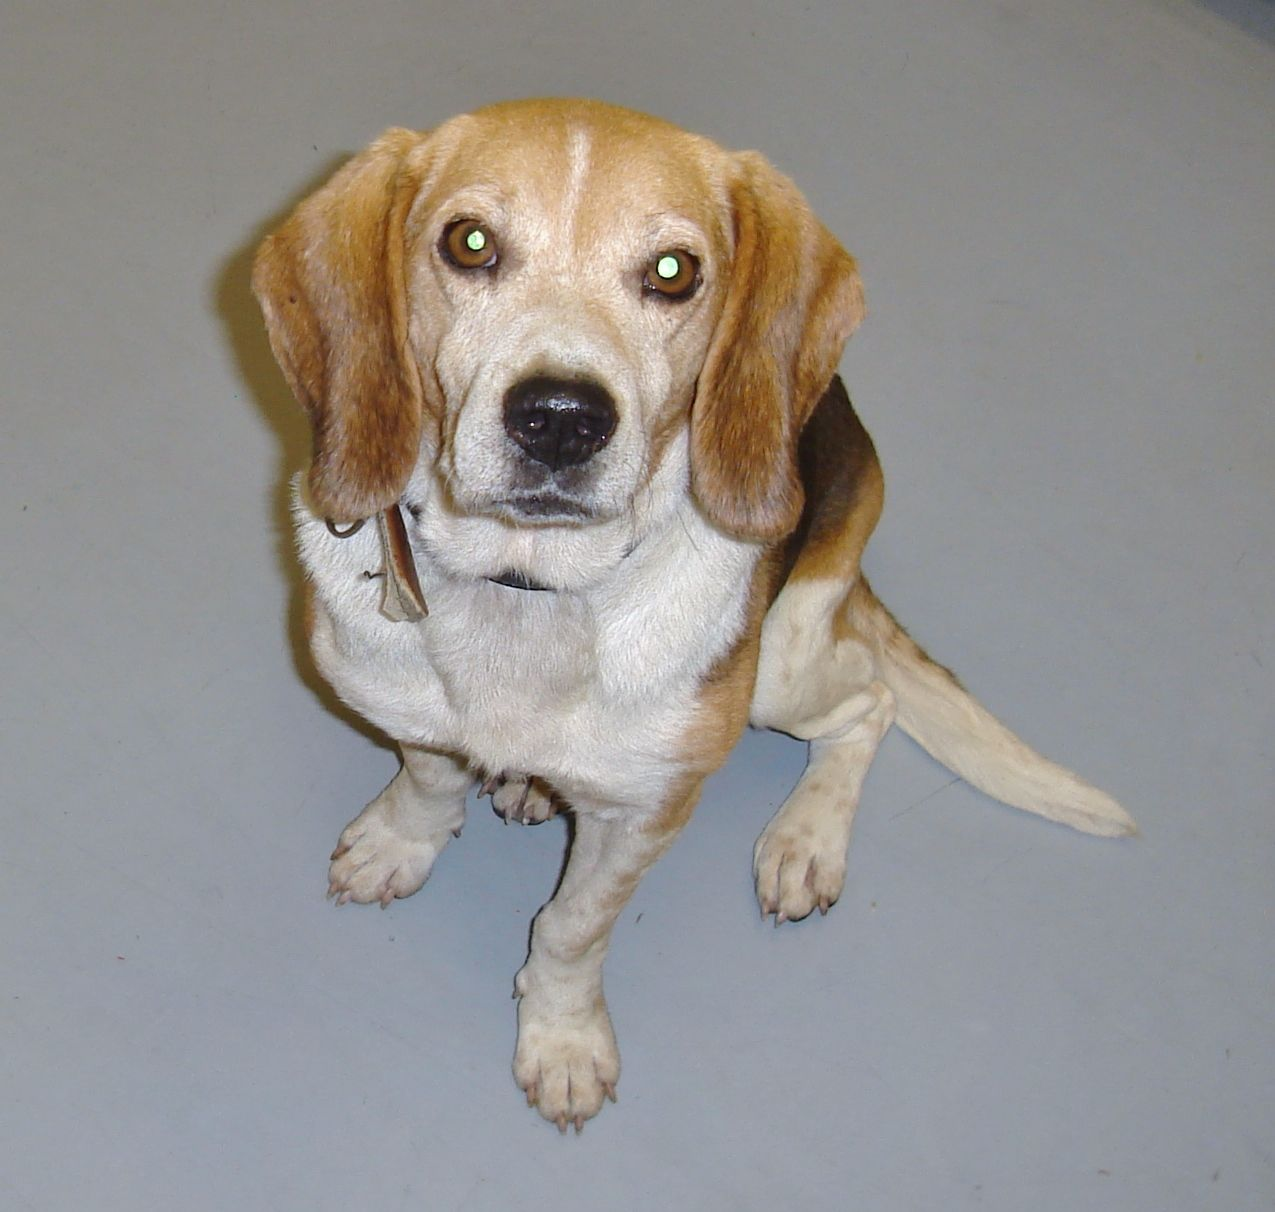 Super Urgent Please Save Me Eu Date 7 22 2014 Zeke Breed Beagle Age Senior Gender Male Size Shelter Infor Dog Id Dog Adoption Dogs